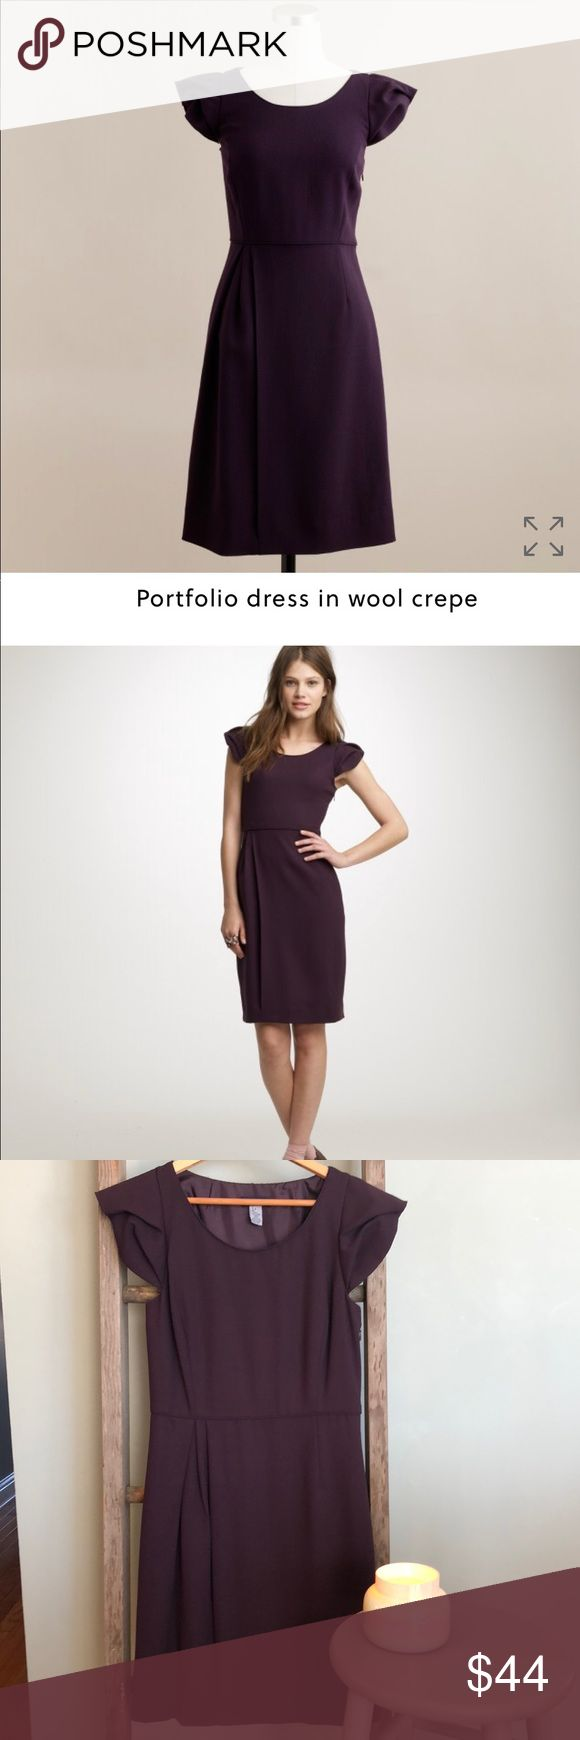 J.Crew Portfolio Dress in Wool Crepe, Deep Plum, 0 J.Crew Portfolio Dress is fashioned from a light wool crepe with a soft matte texture, this little dress is beyond lovely, it's effortlessly chic!  The light fluid fabric keeps the wearing easy and crease free. Flattering side-skirt pleating and adorable cap sleeves! Fitted bodice, side zip, straight skirt. This dress is in excellent condition other than one thread coming loose, as shown in picture. It is on the backside of the right sleeve…